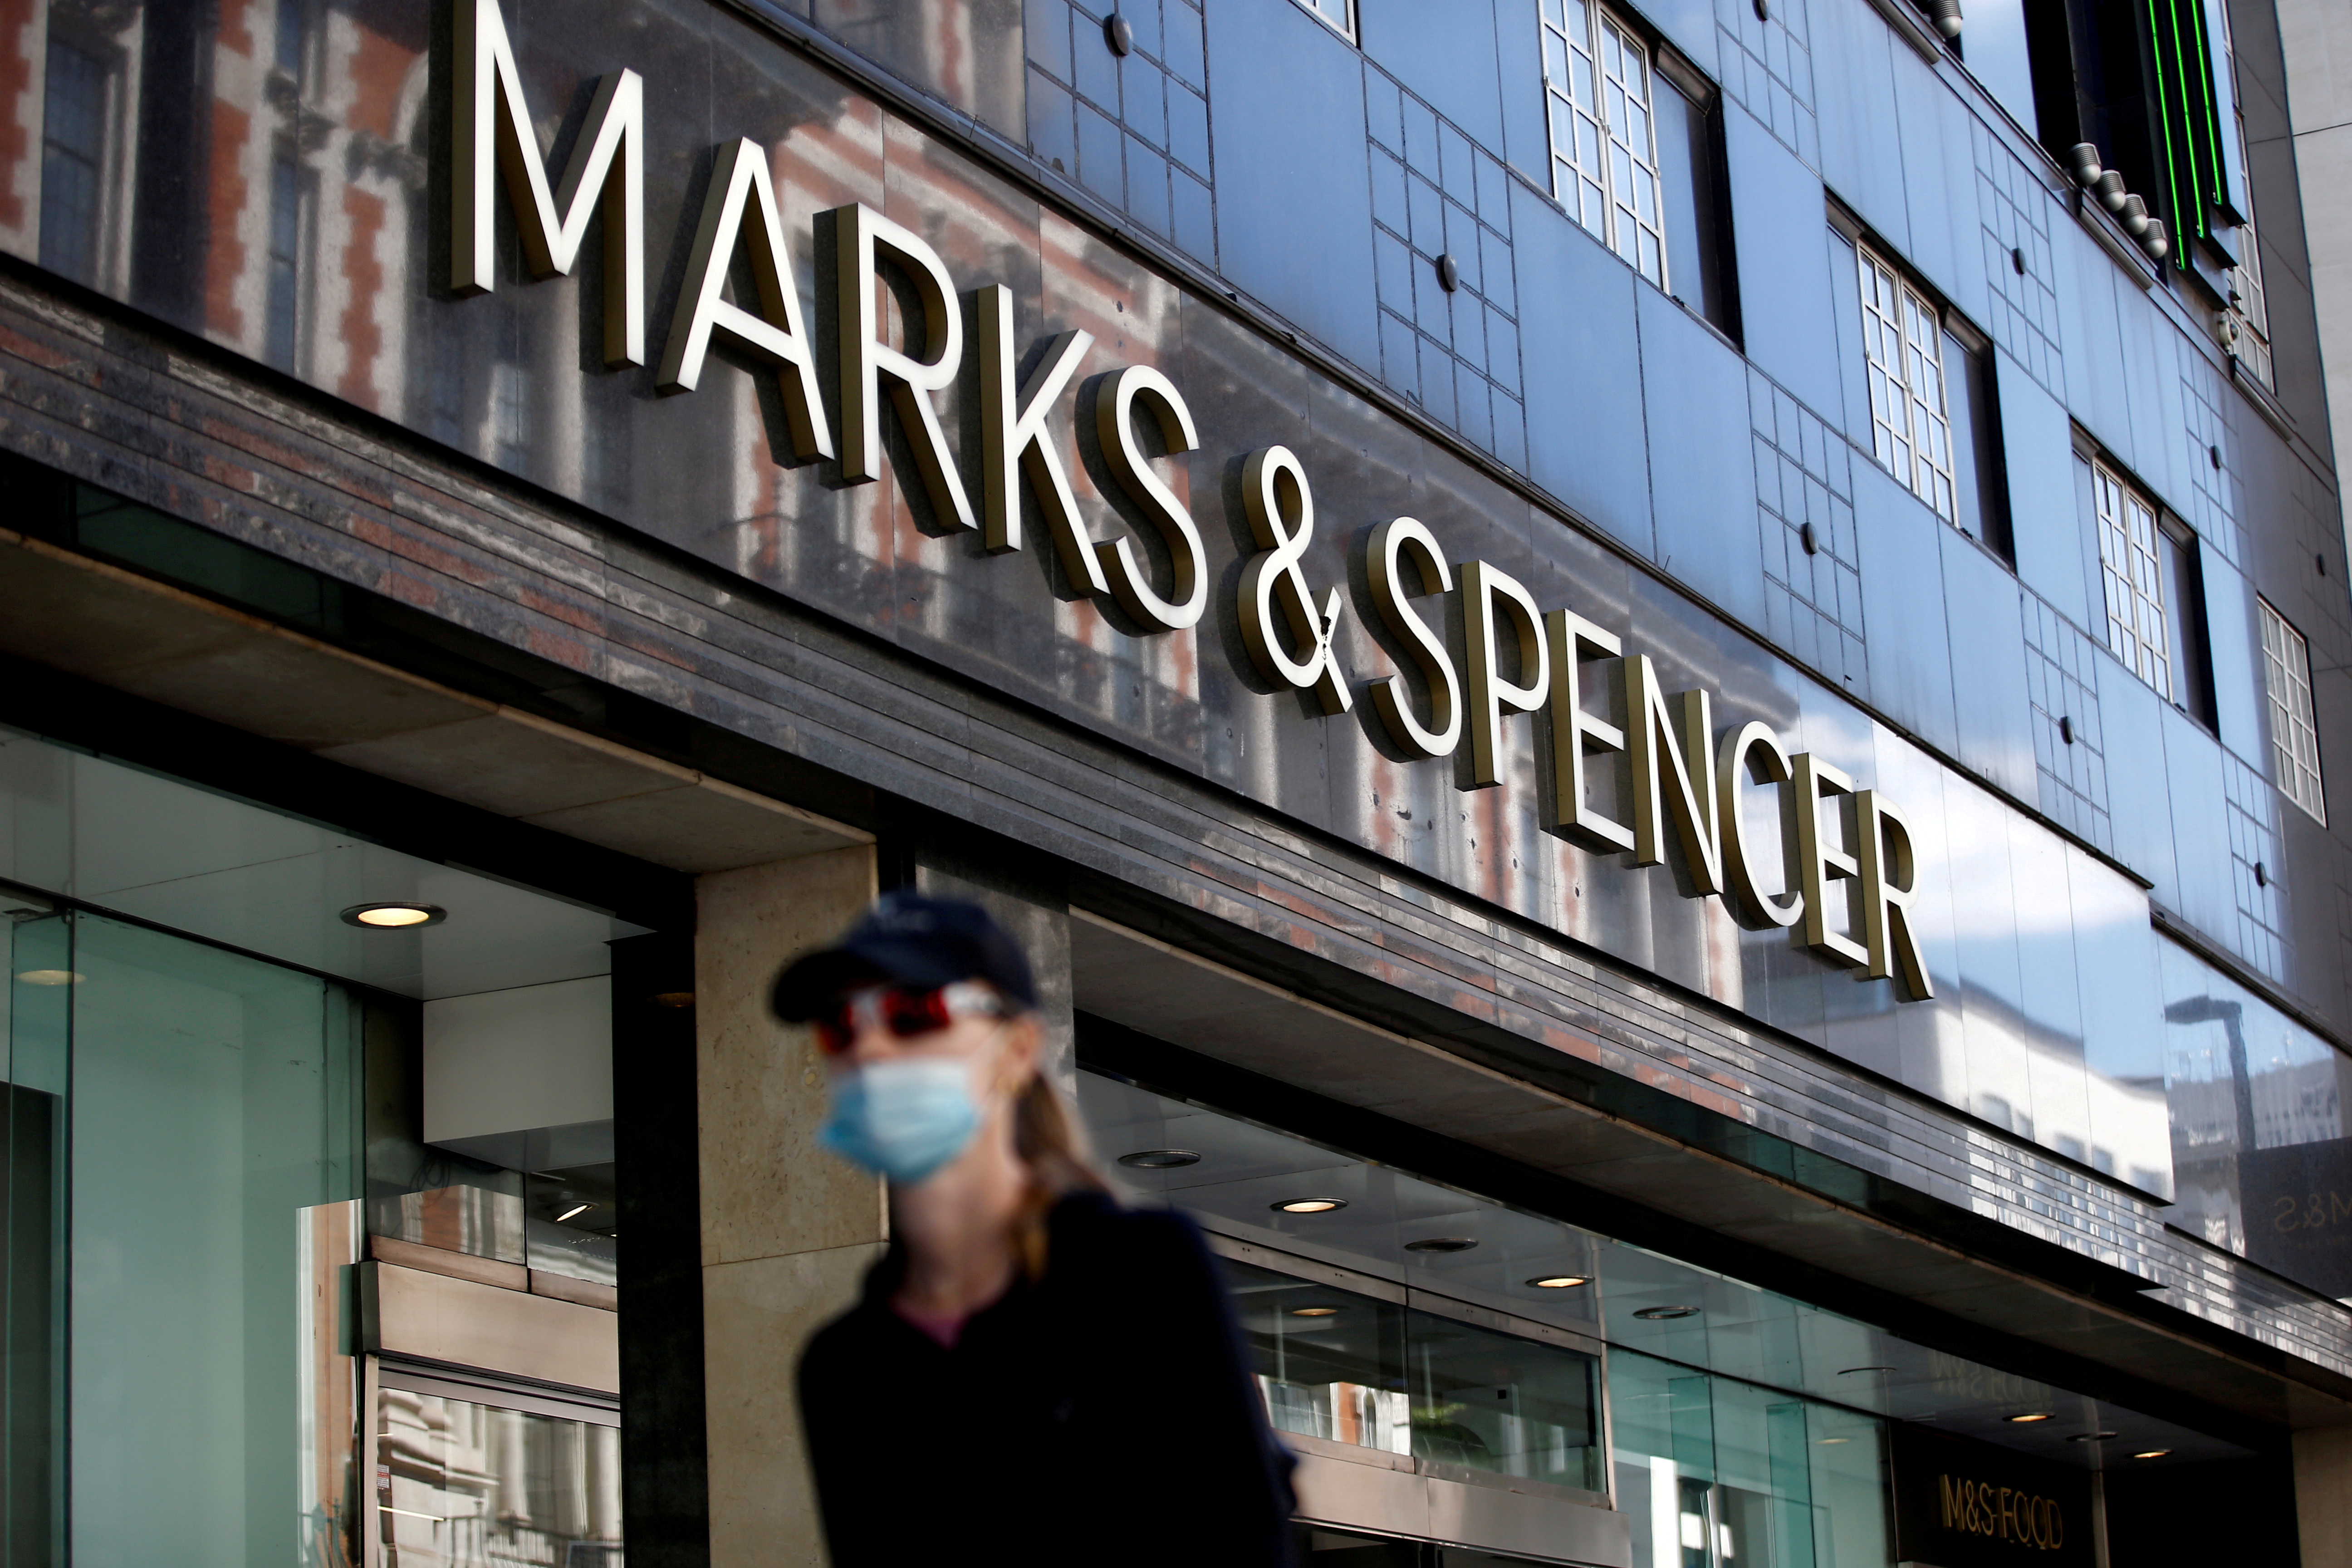 A woman walks past a Marks & Spencer store at Oxford Street, amid the outbreak of the coronavirus disease (COVID-19), in London, Britain, July 20, 2020. REUTERS/Henry Nicholls/File Photo